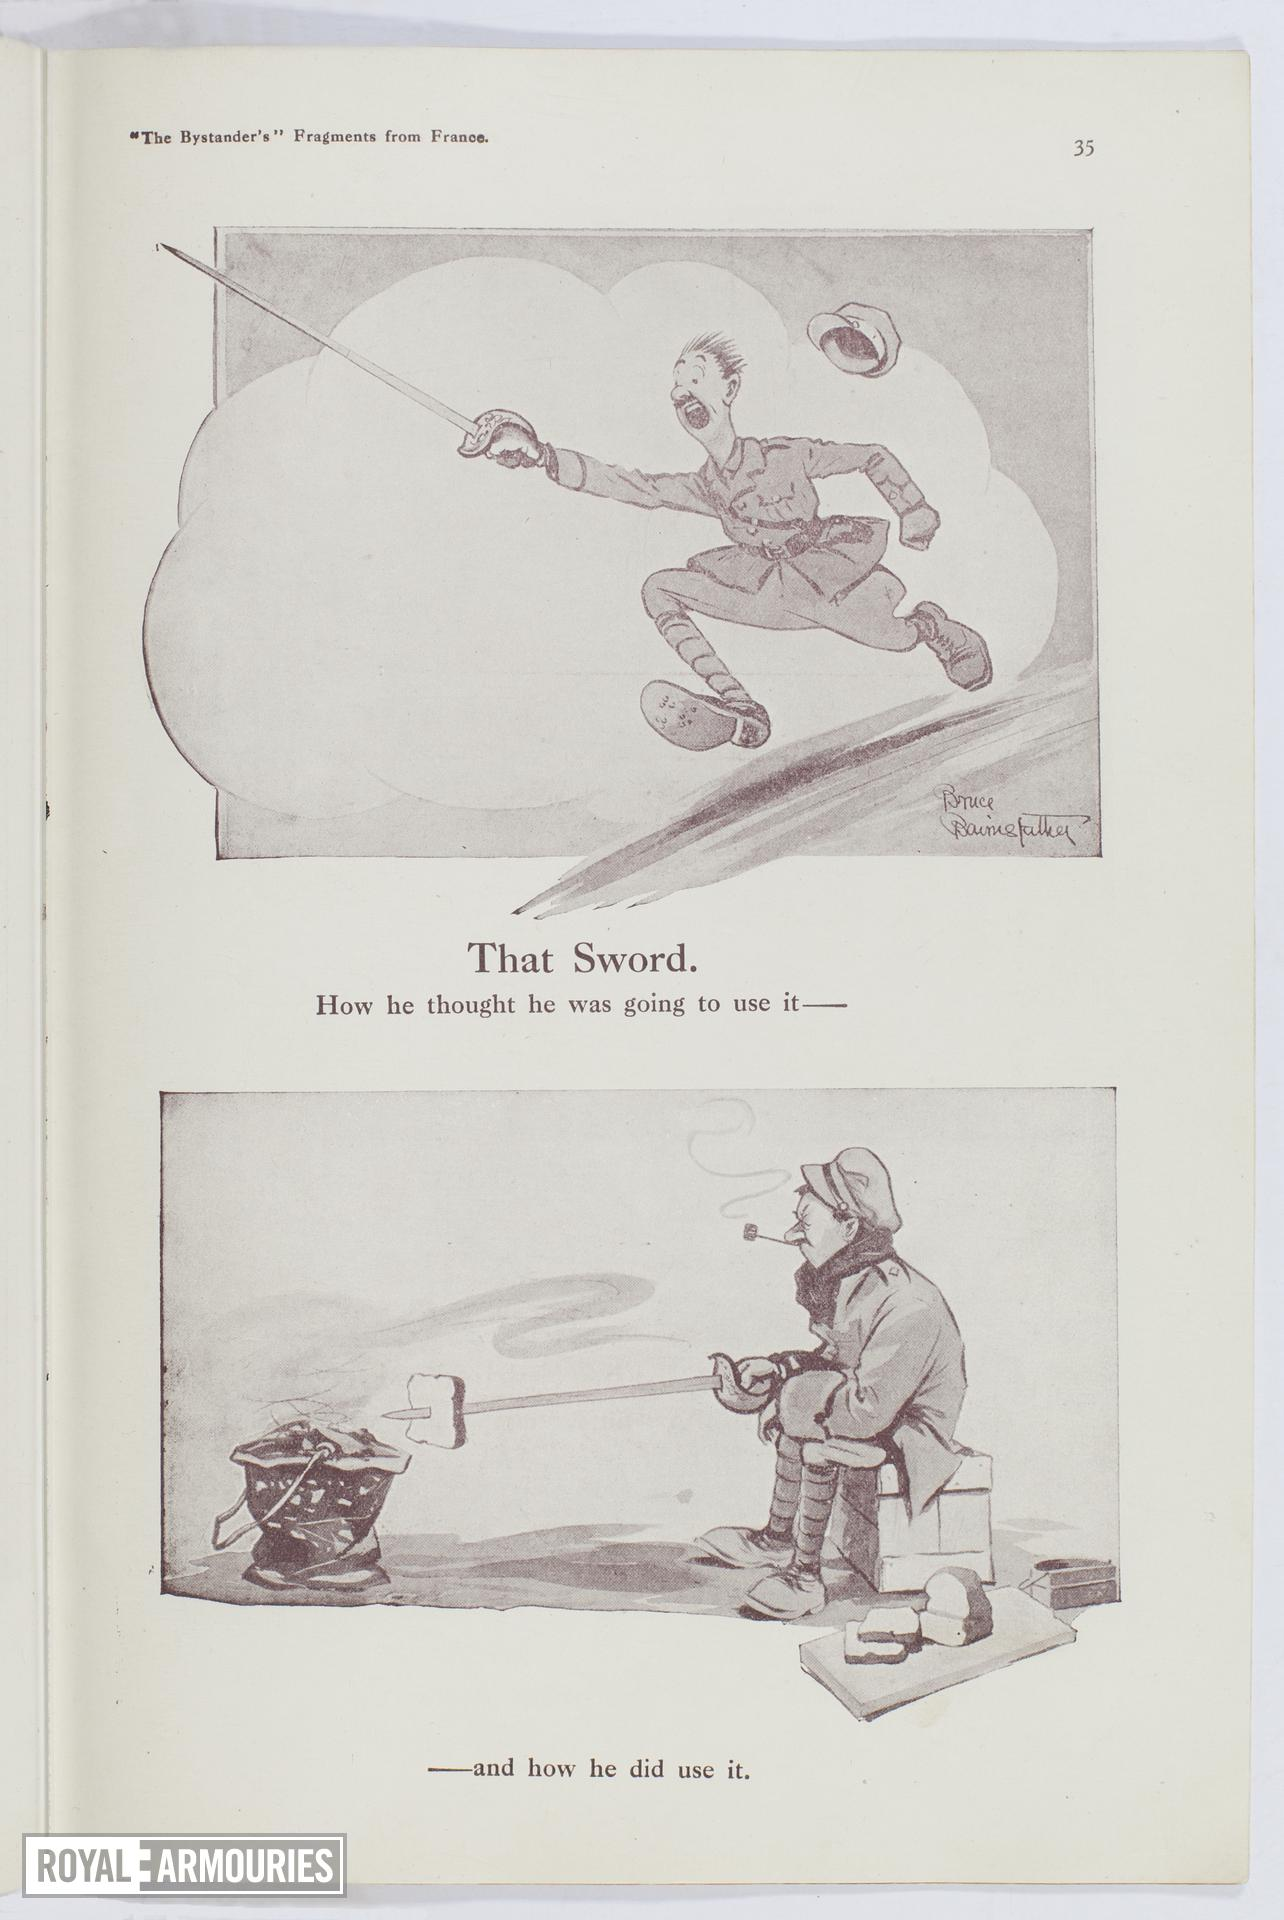 Plate entitled ,'That Sword. How he though he was going to use it and how he did use i,' page 35, taken from the title, The Bystander's Fragments from France, tenth edition by Captain Bruce Bairnsfather.